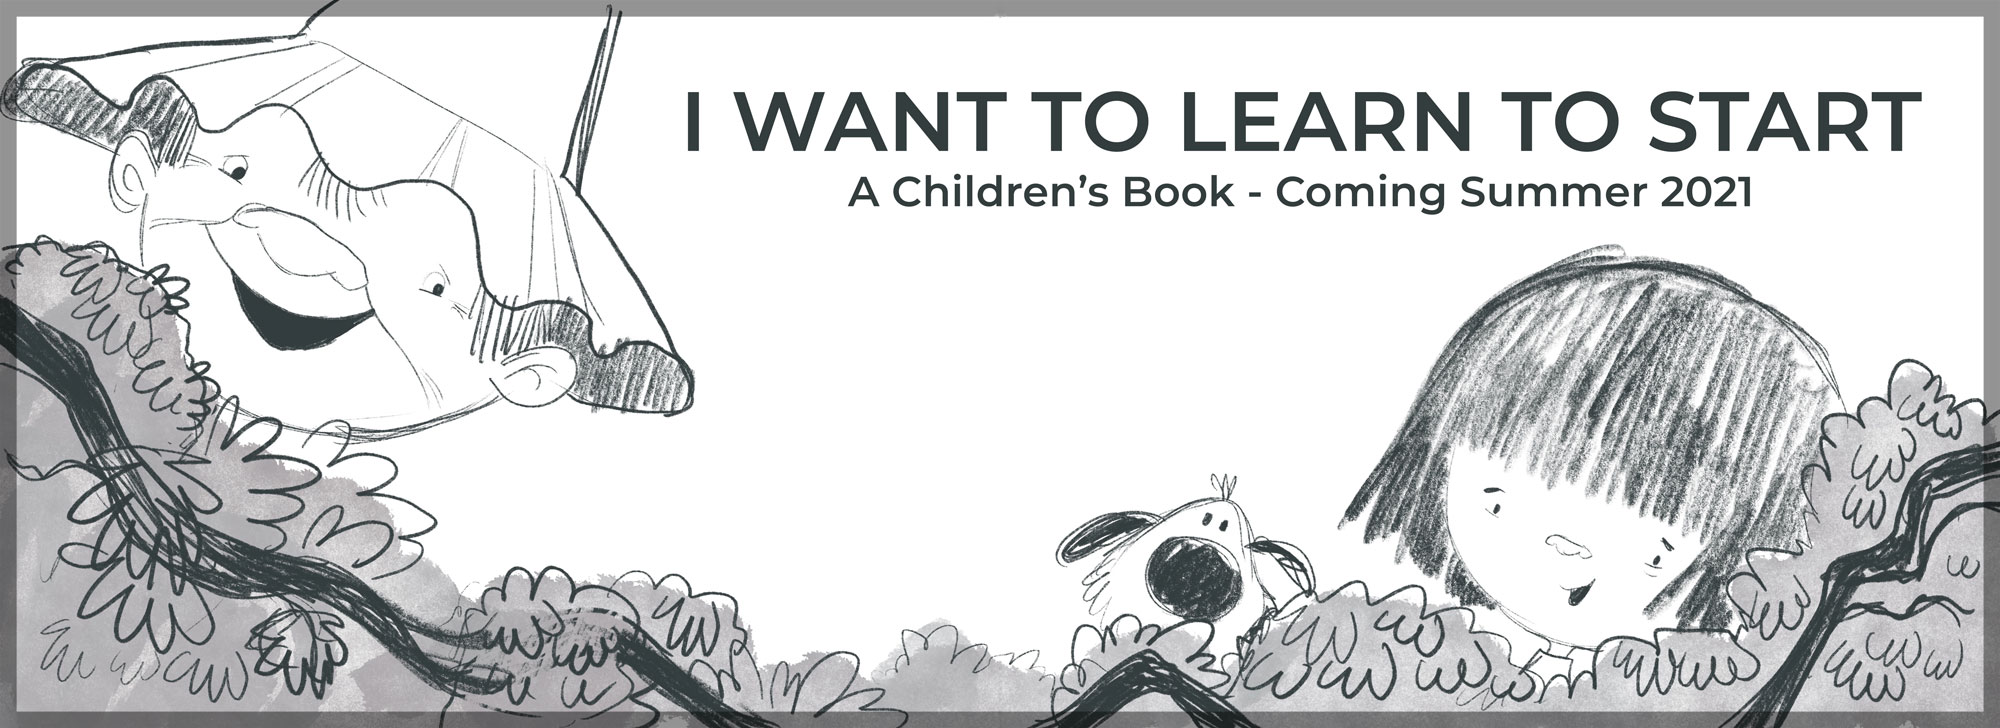 I Want to Learn to Start - A Children's Book coming Summer 2021